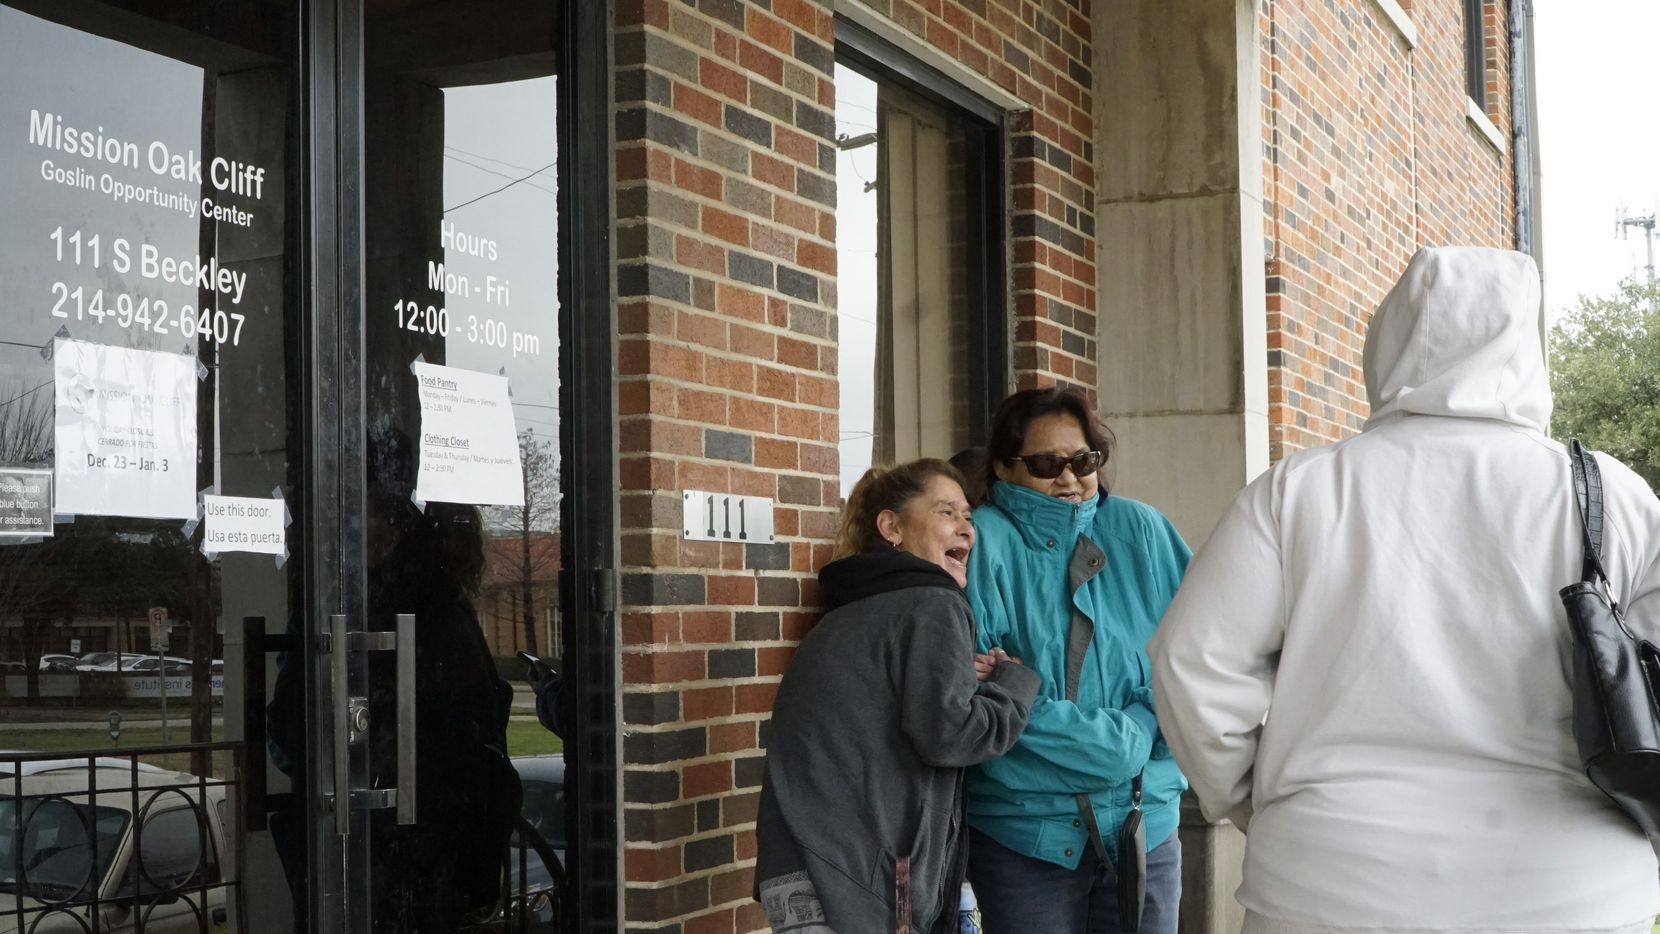 Suzette Huffman, Kateri Marcias and Debby Hall wait for the doors to open at Mission Oak Cliff in Dallas on Dec. 10.